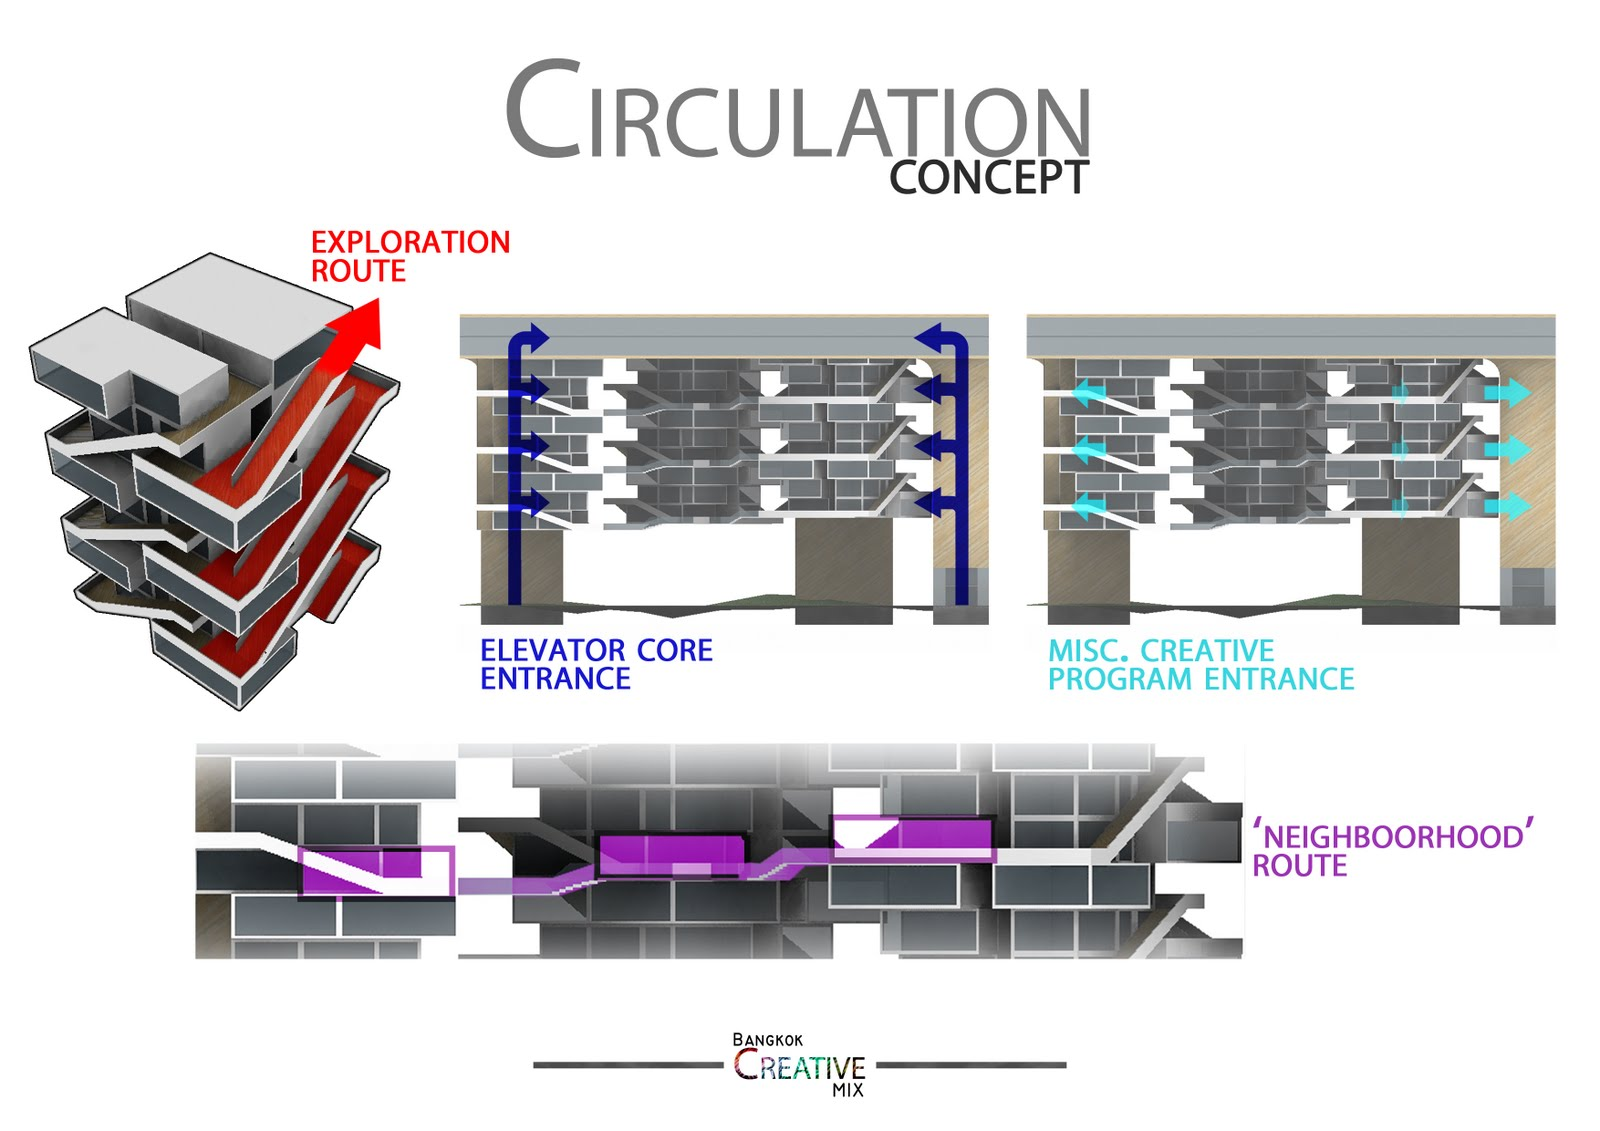 Architectural design studio final concept and diagrams for Architectural concepts circulation